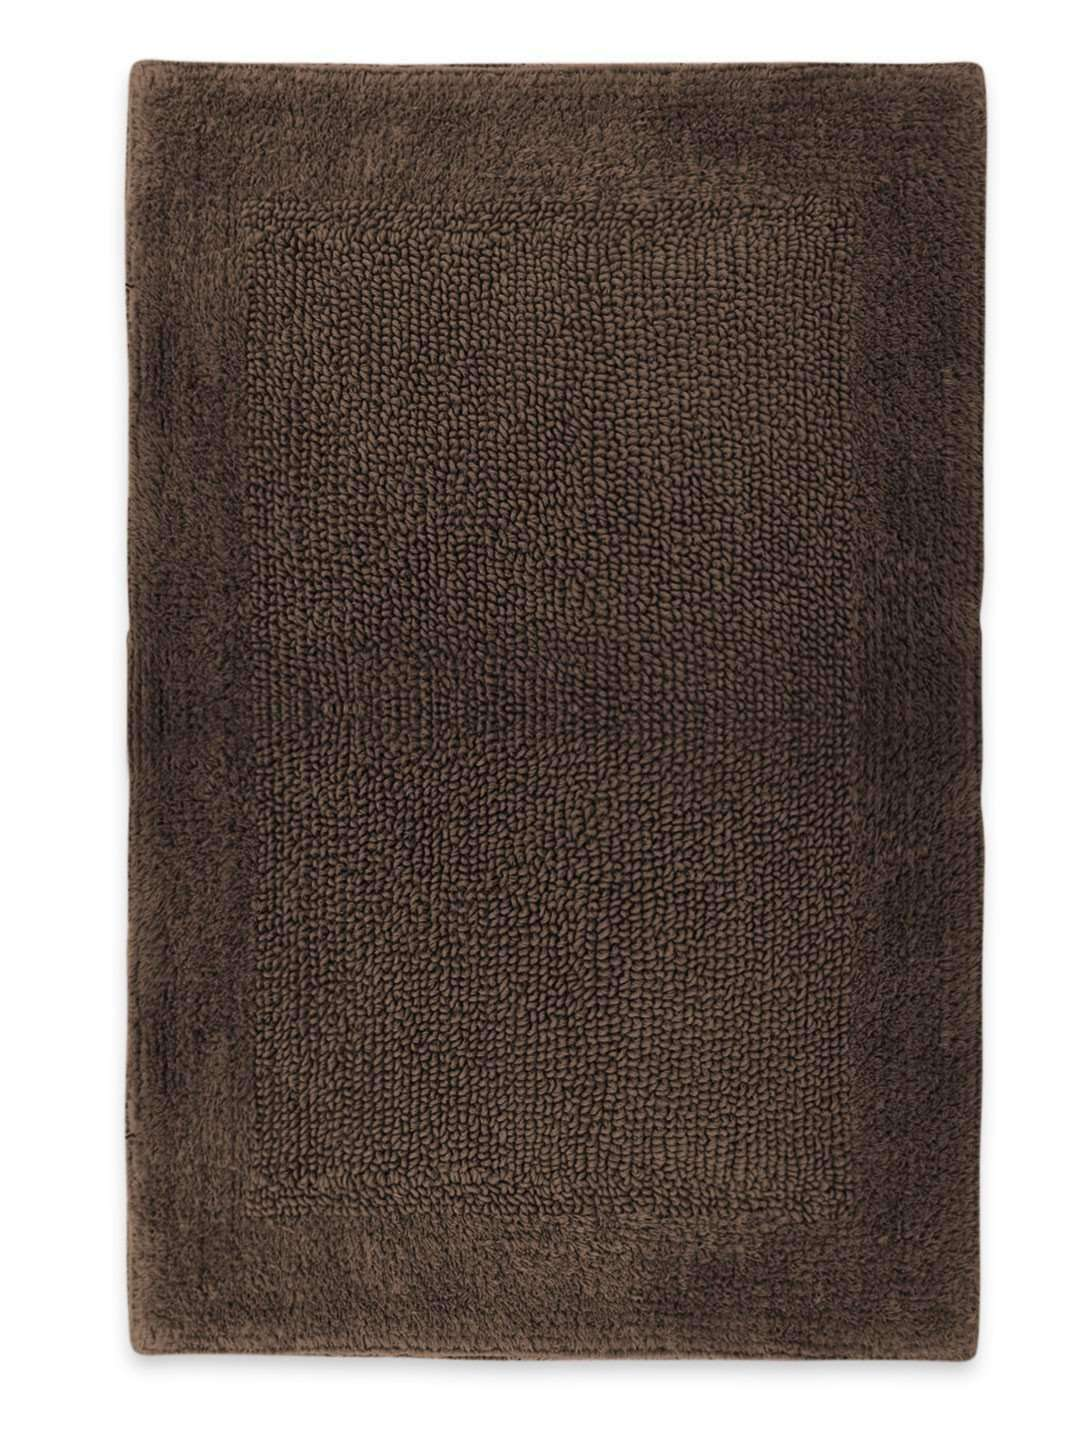 Anini Spa Bamboo and Cotton Bath Rug